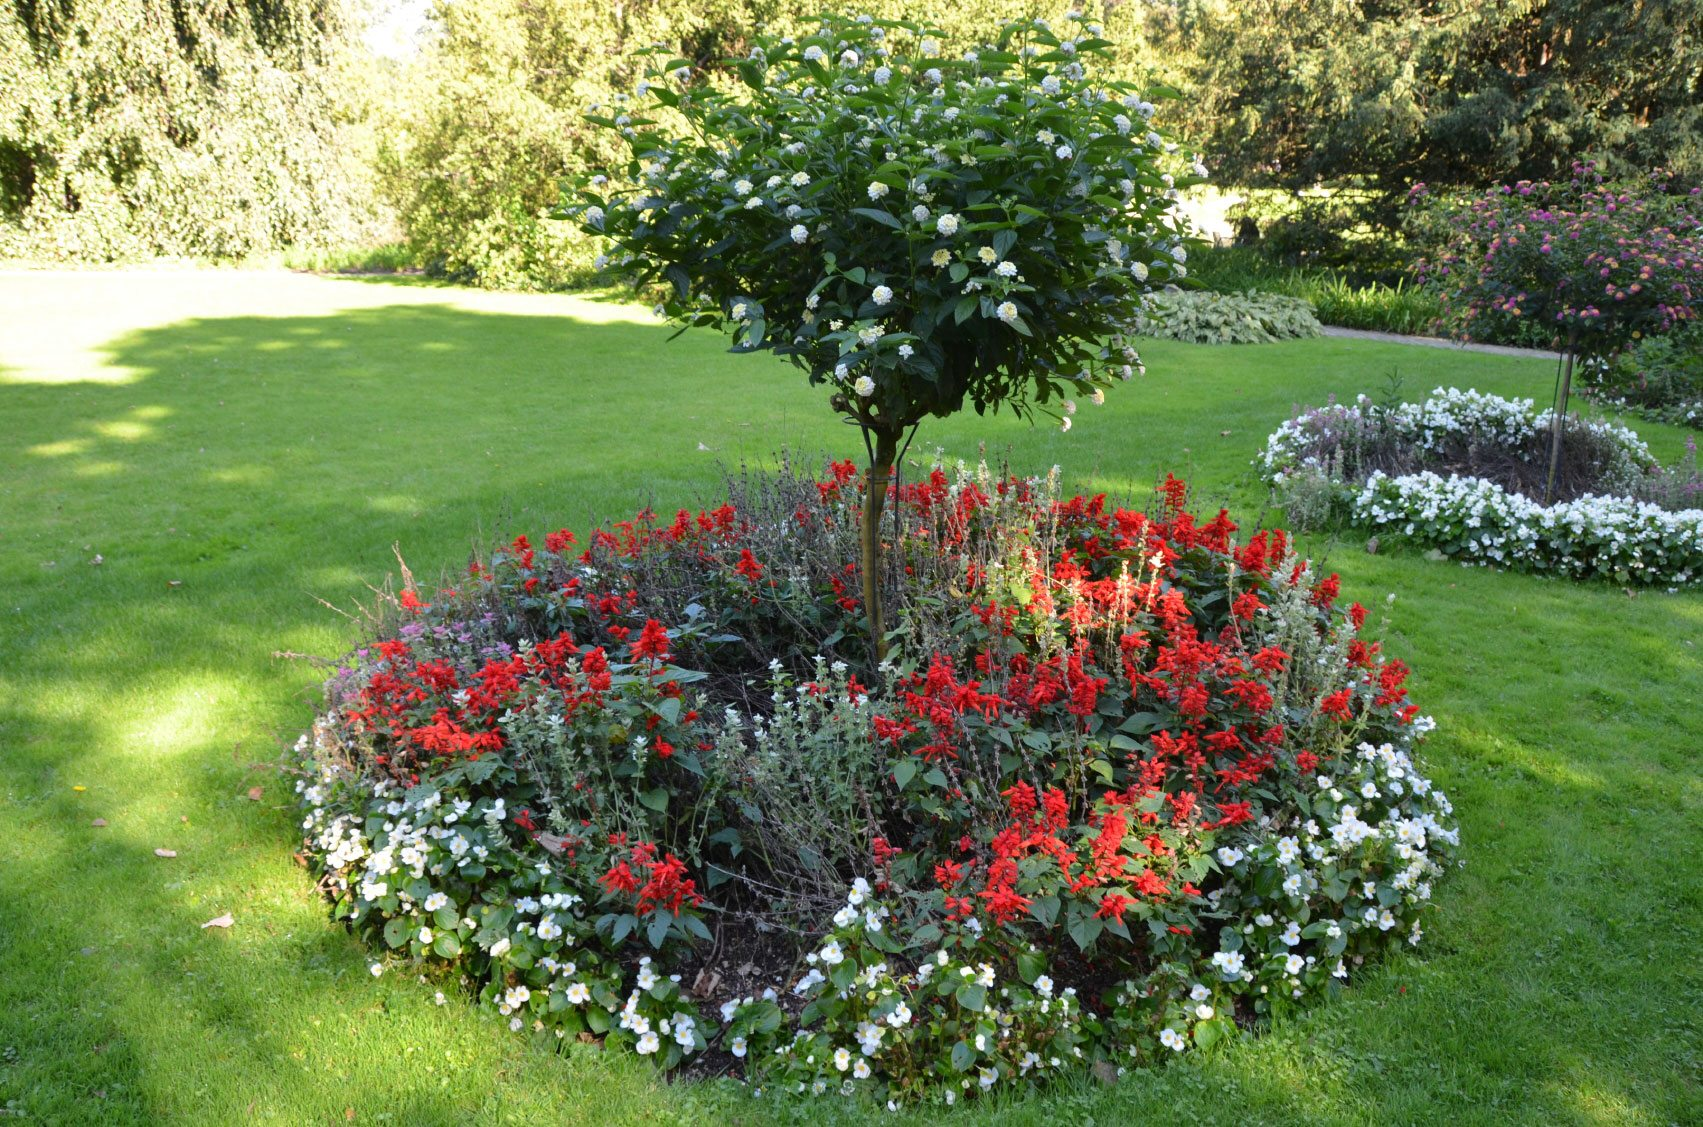 What Is A Ring Garden: Learn About Shrub And Tree Island Beds